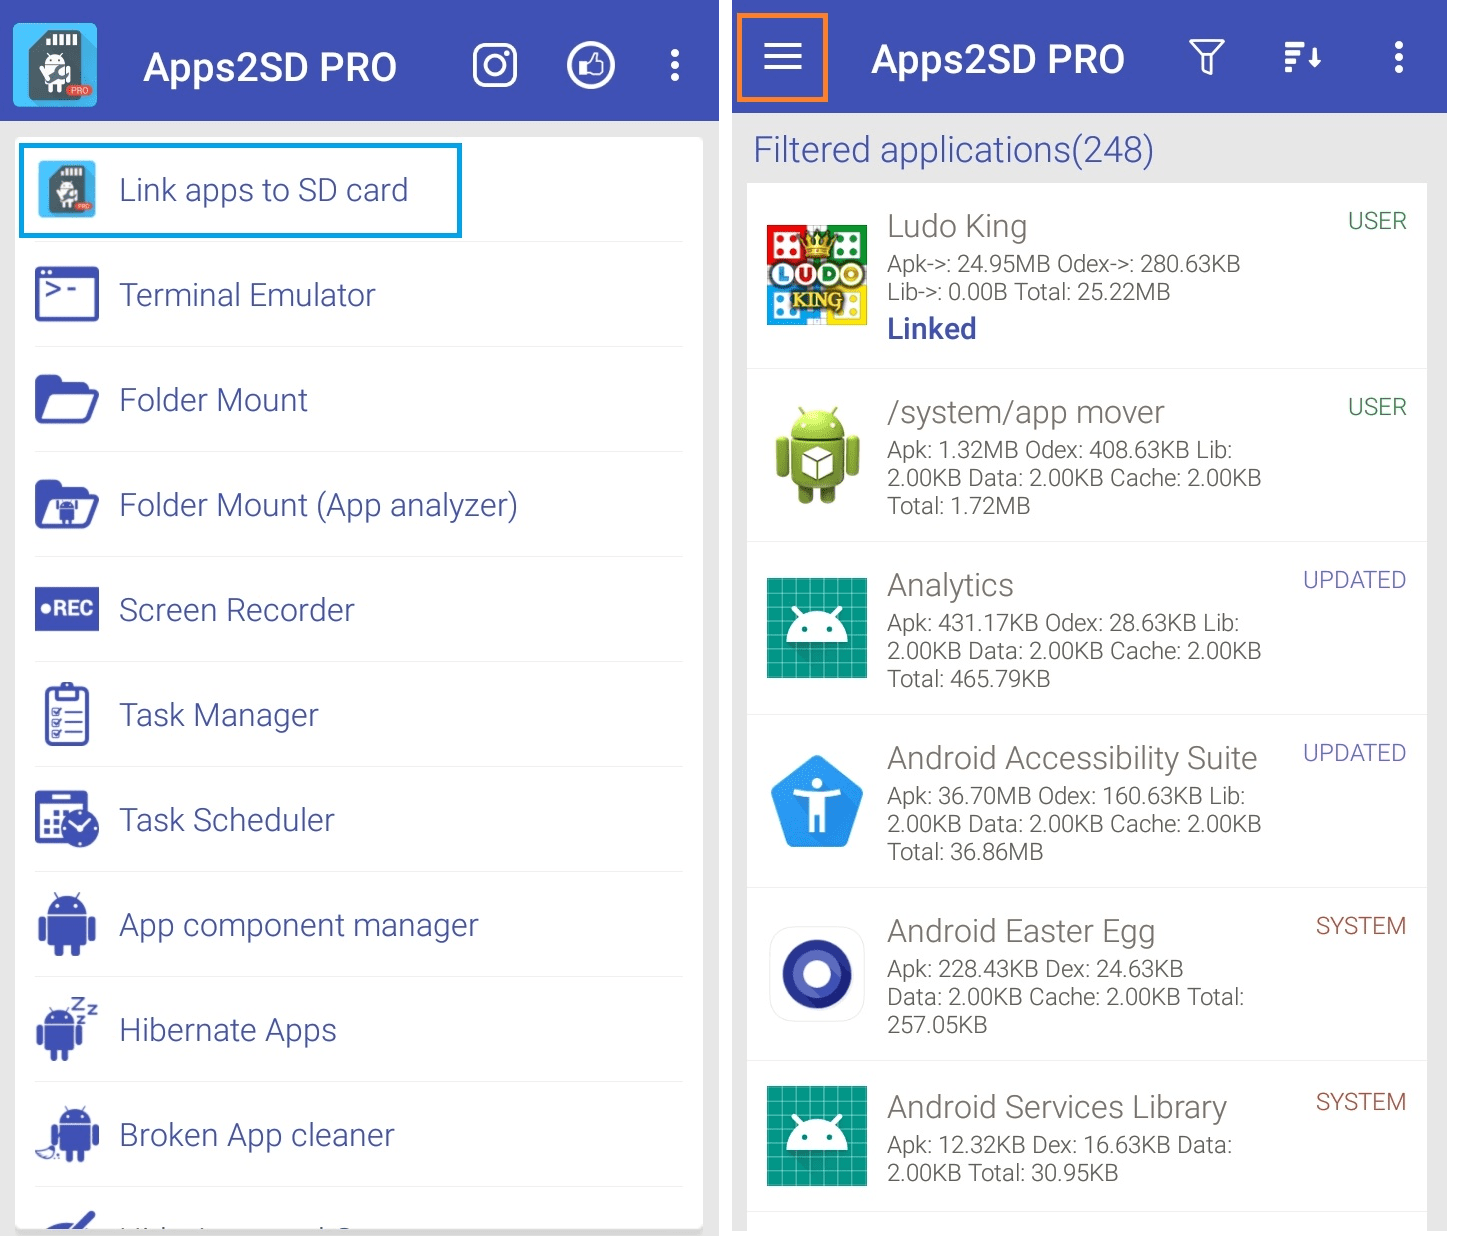 Link apps to SD card